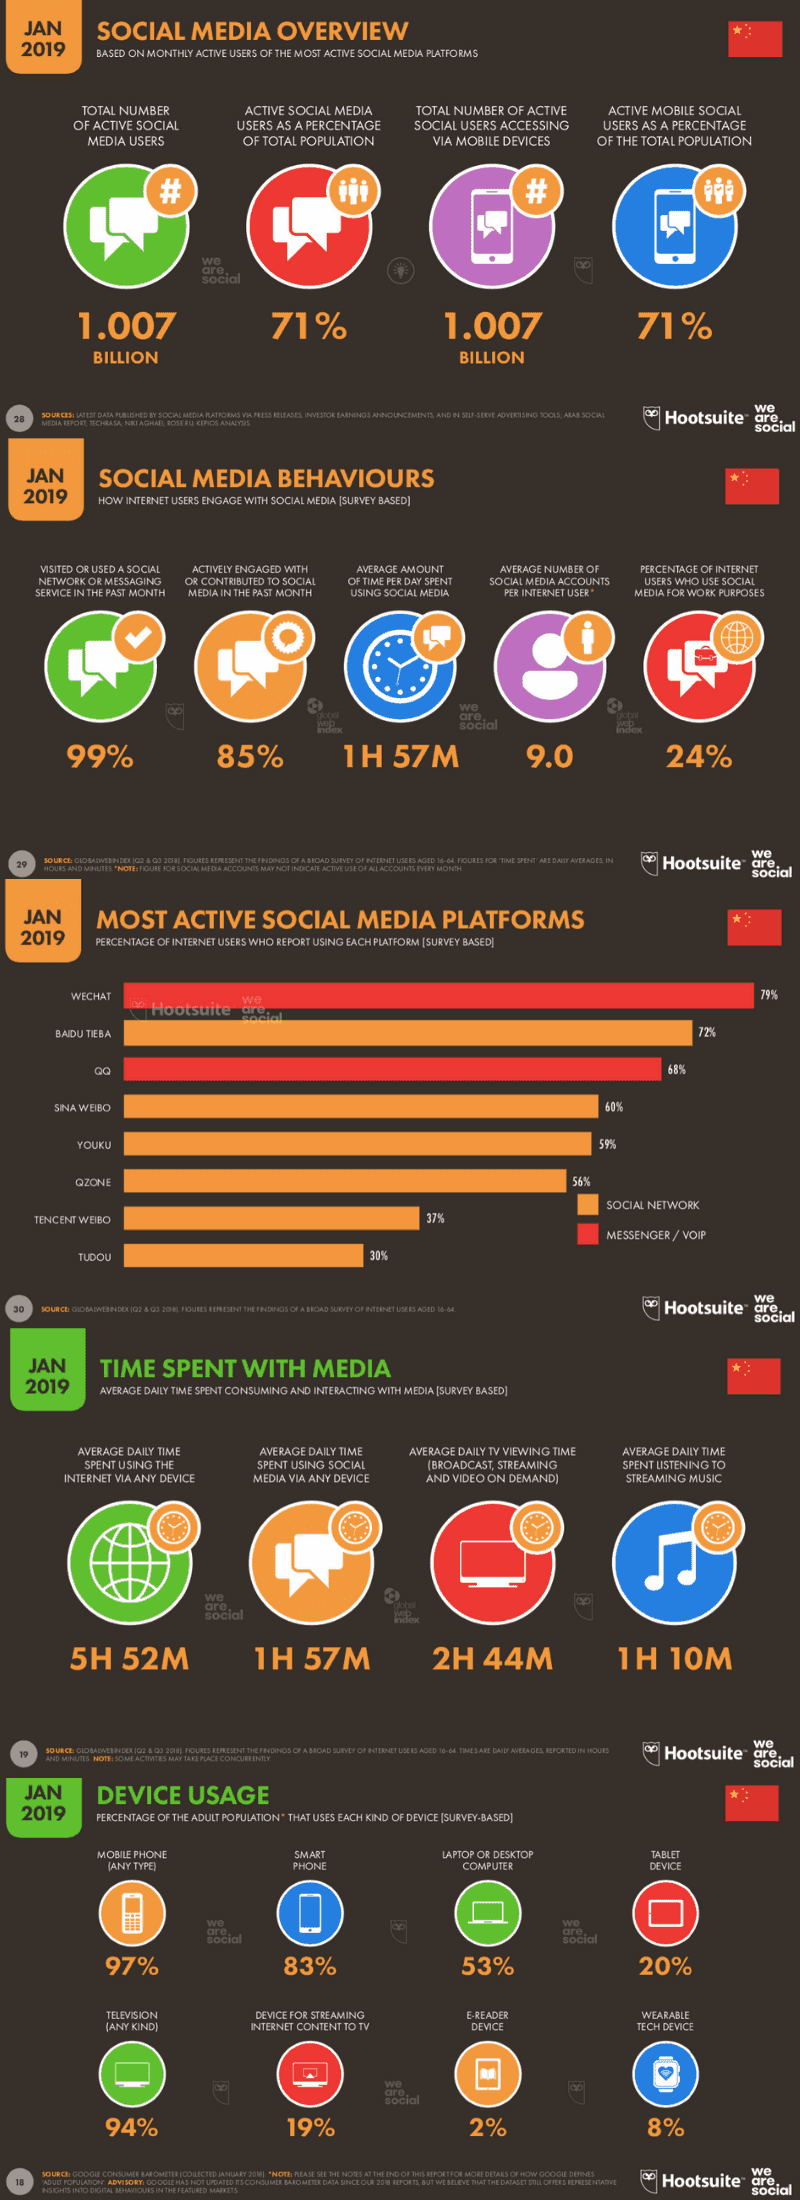 For a more comprehensive, birds-eye-view of social media in China, check out this amazing infographic.